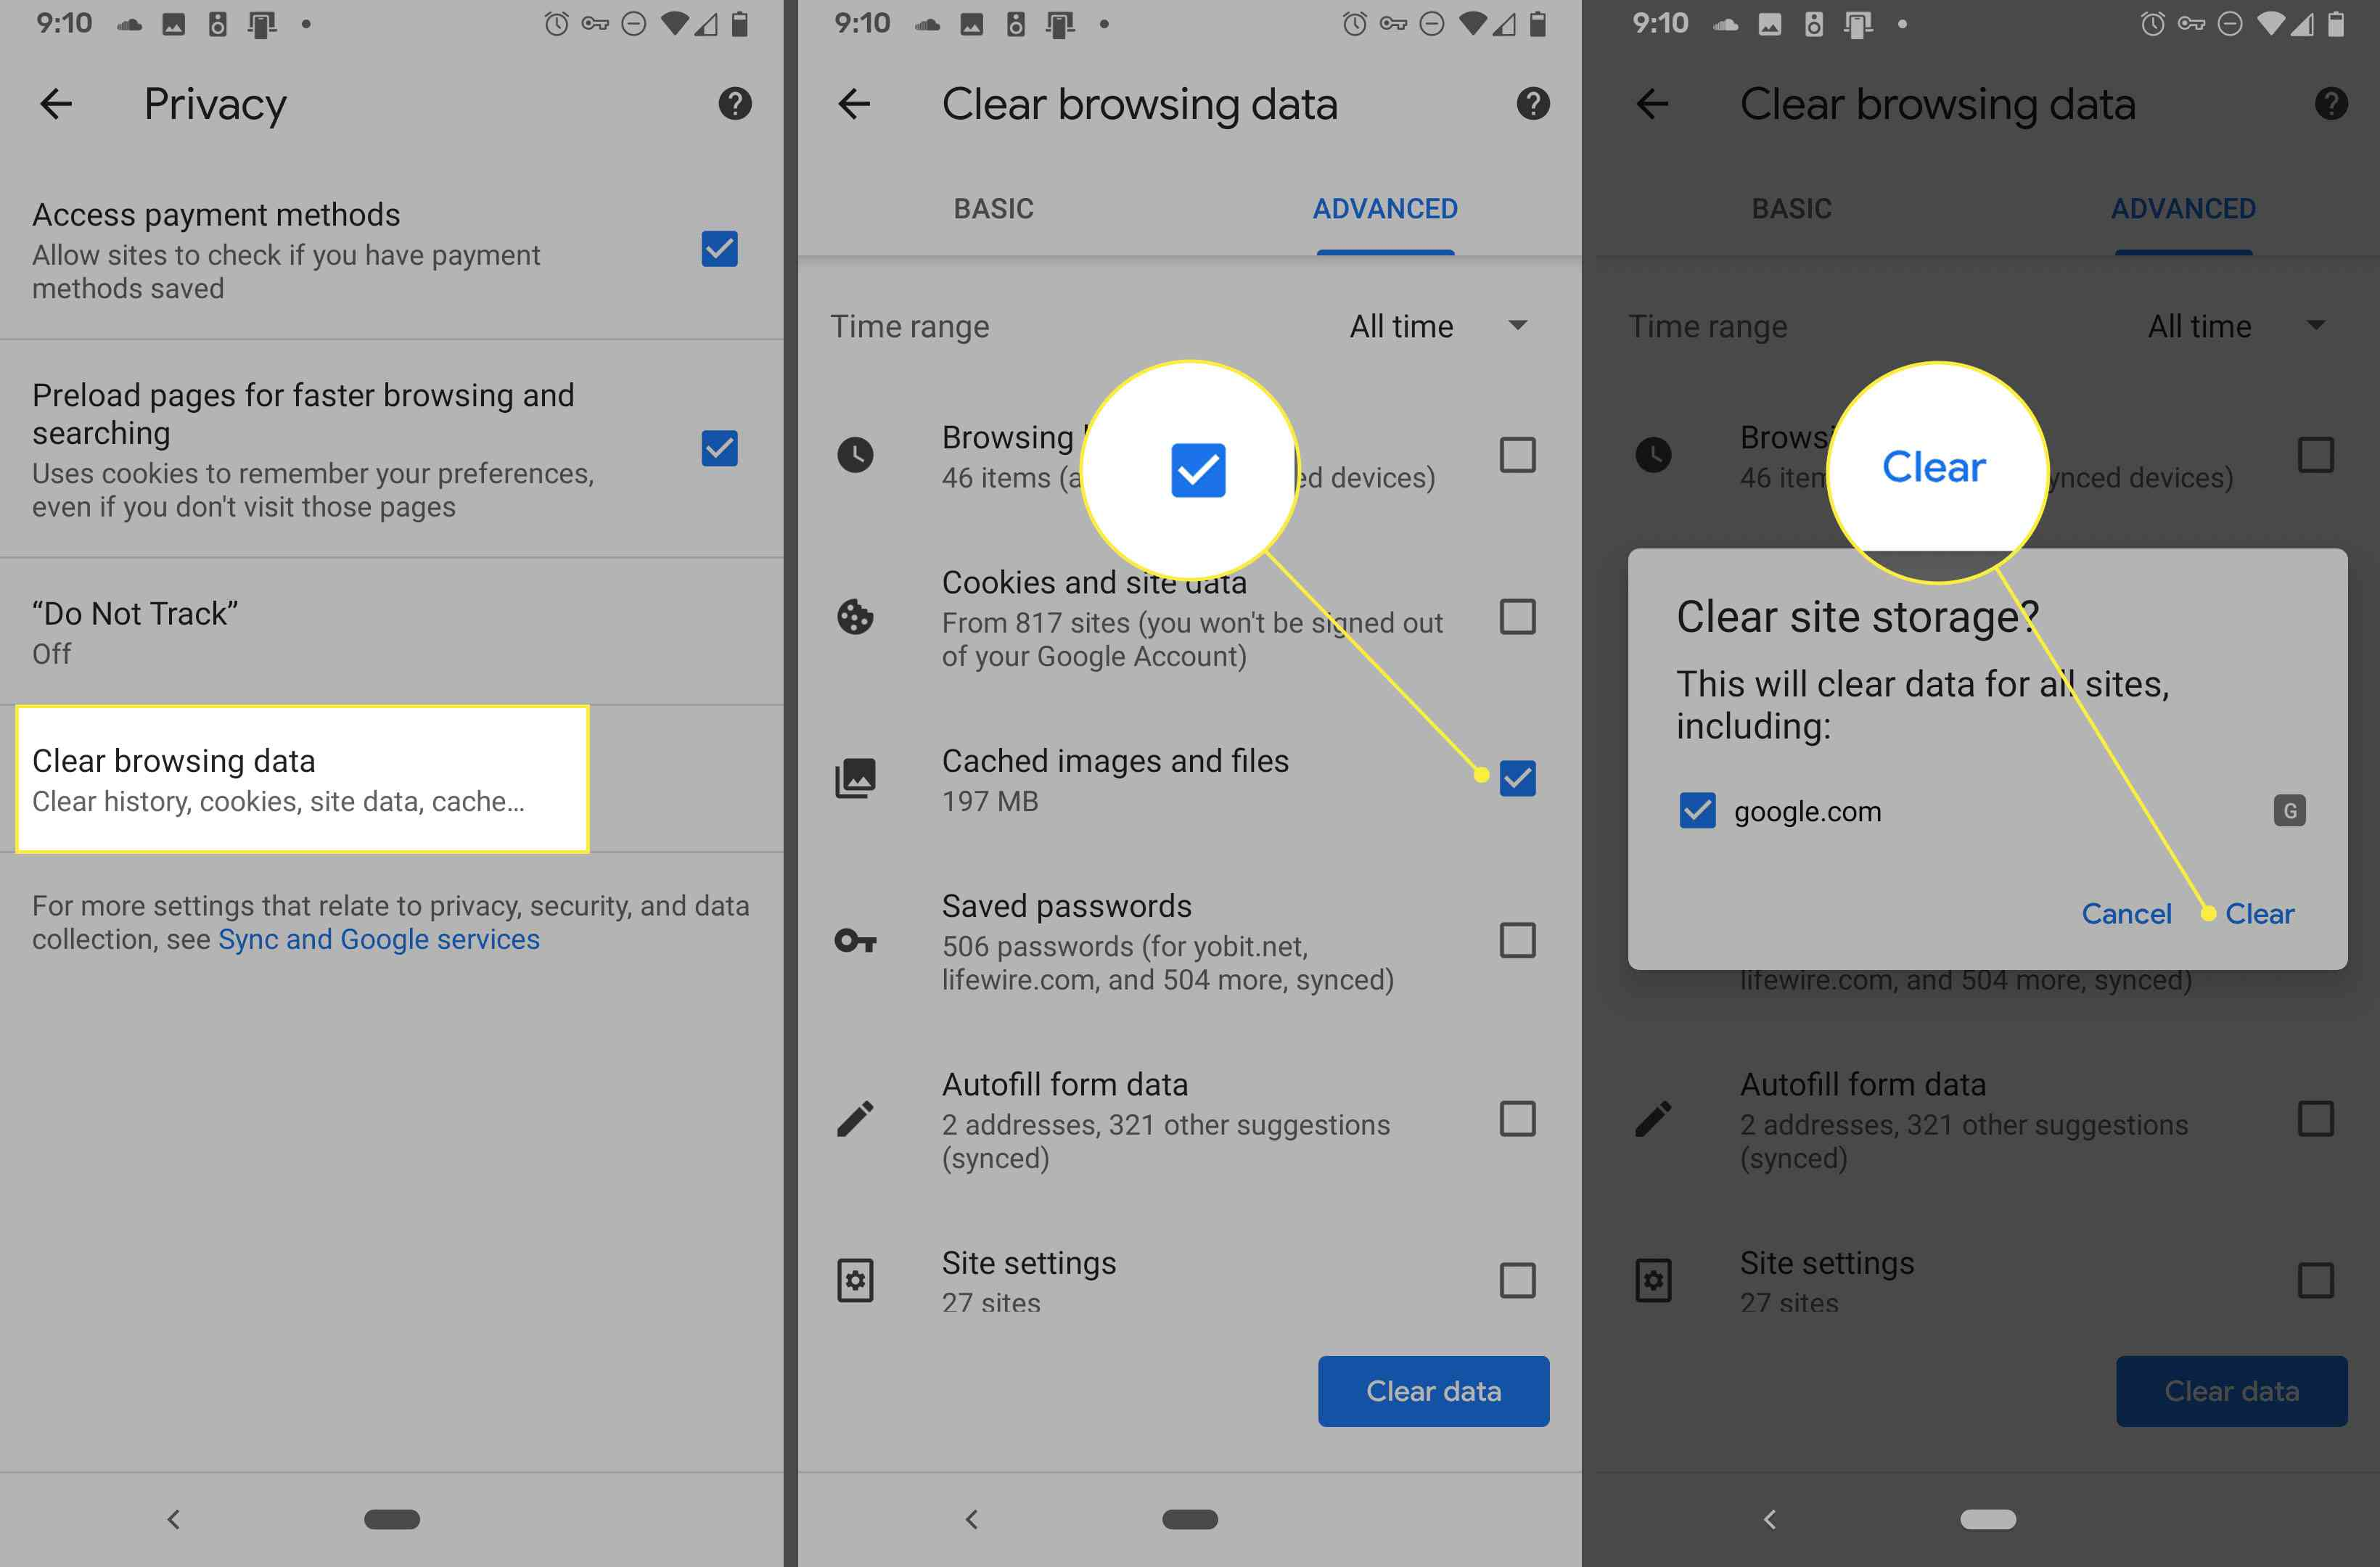 Screenshots of Chrome for Android showing how to delete browsing data